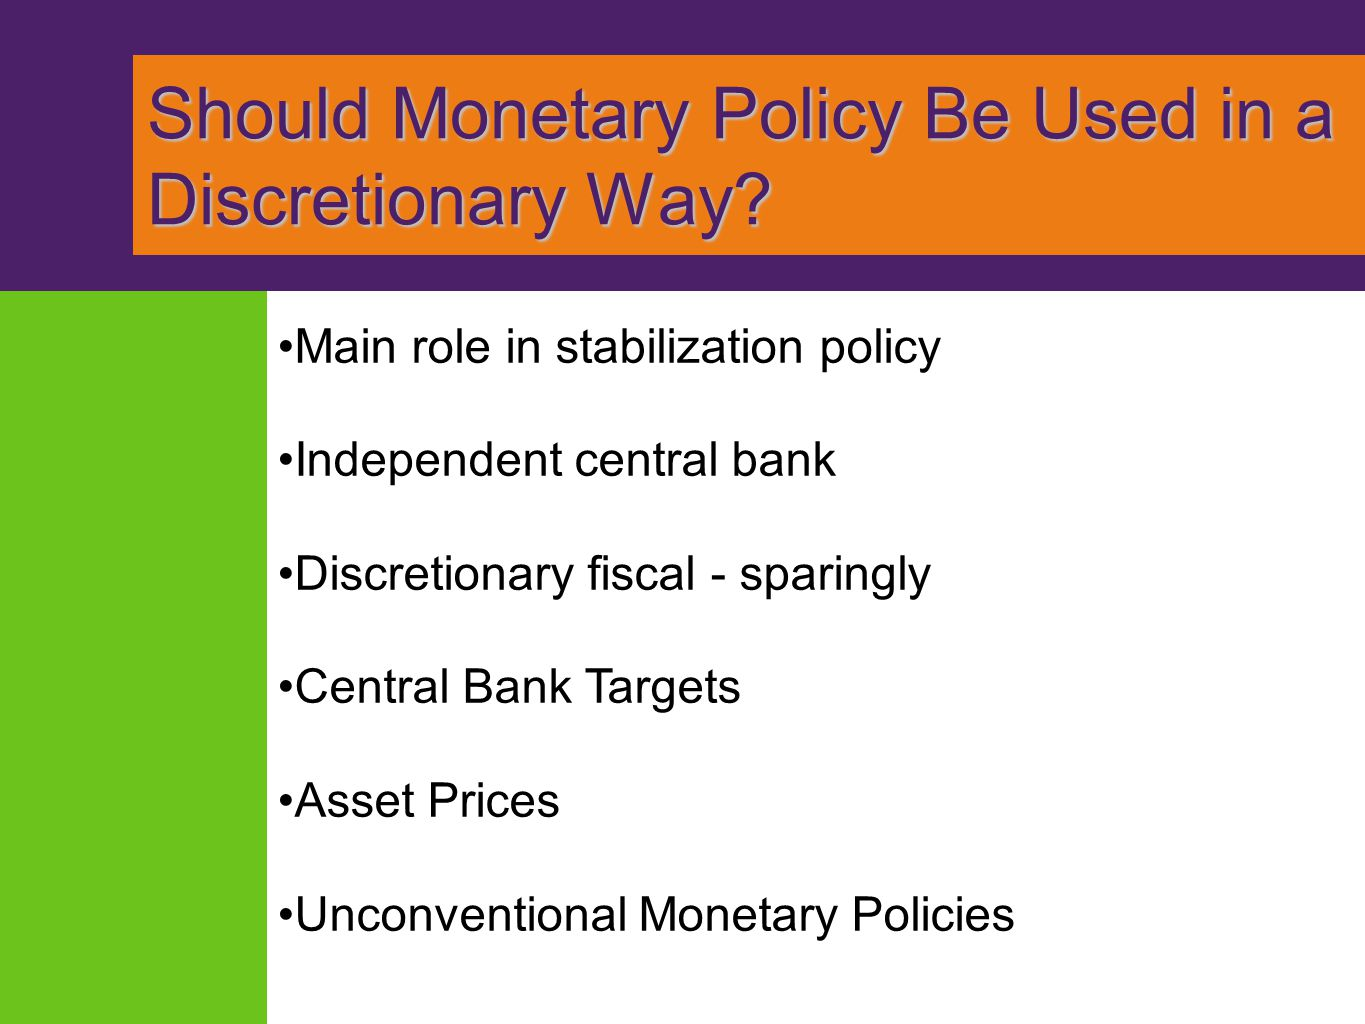 Should Monetary Policy Be Used in a Discretionary Way